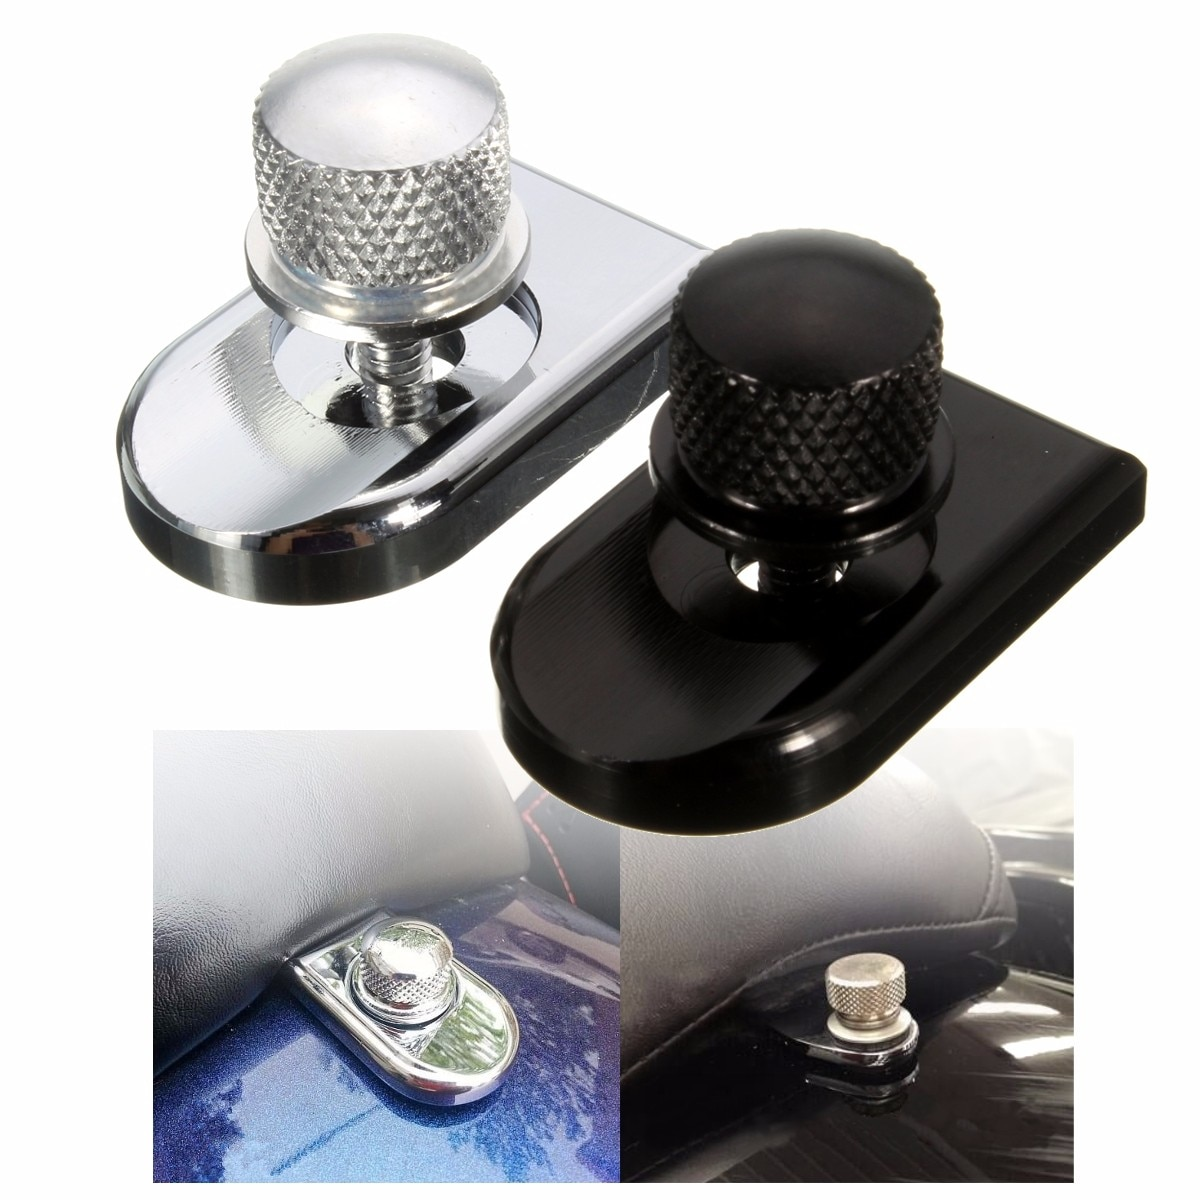 1/4-20 Motorcycle Seat Bolt Tab Screw Mount Knob Cover for Harley Sportster Dyna Fatboy Road King Softail